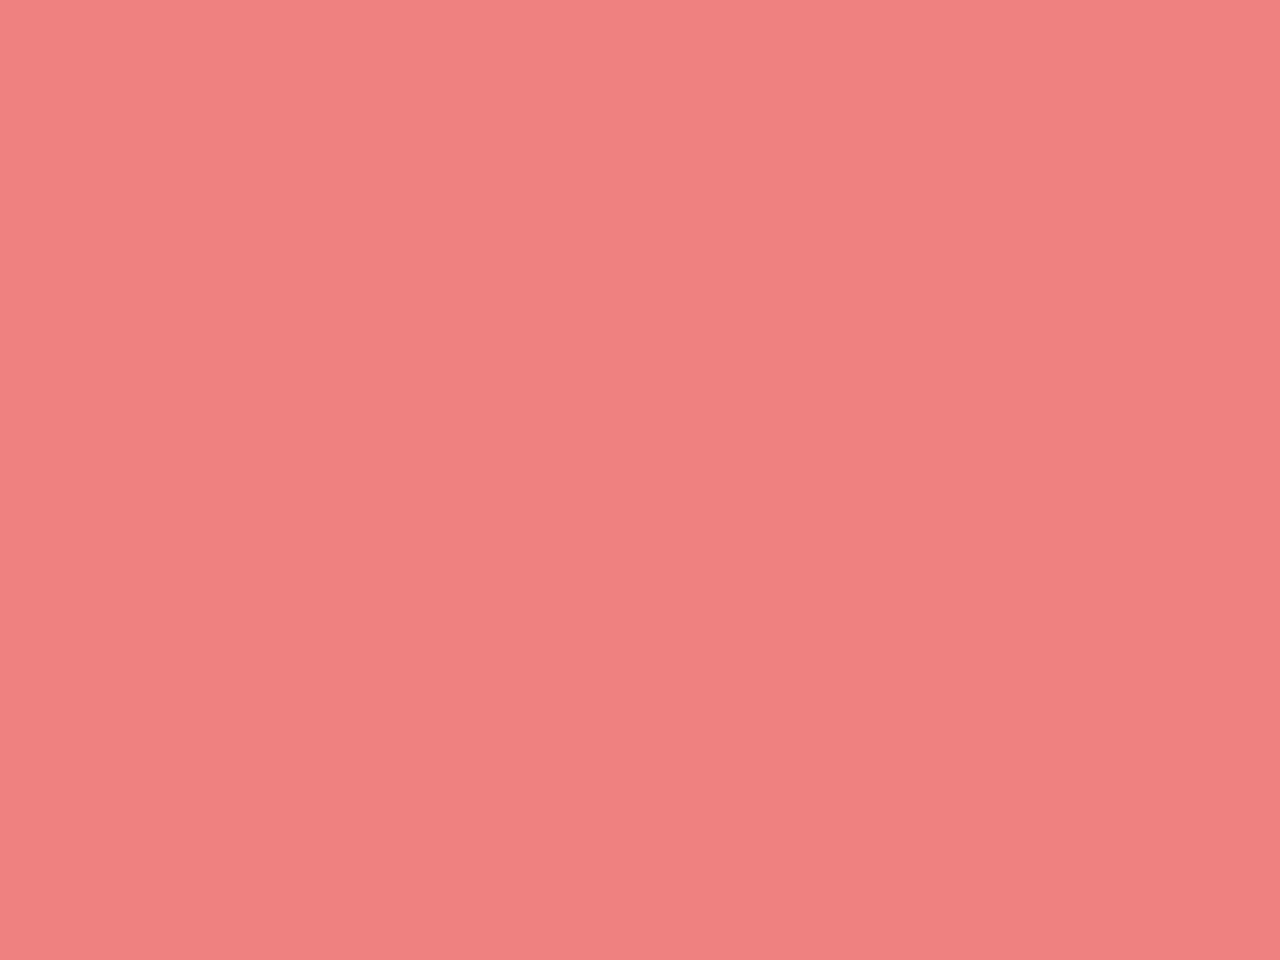 Coral Color Coral Pink Color Cauliflower Coral 1280x960